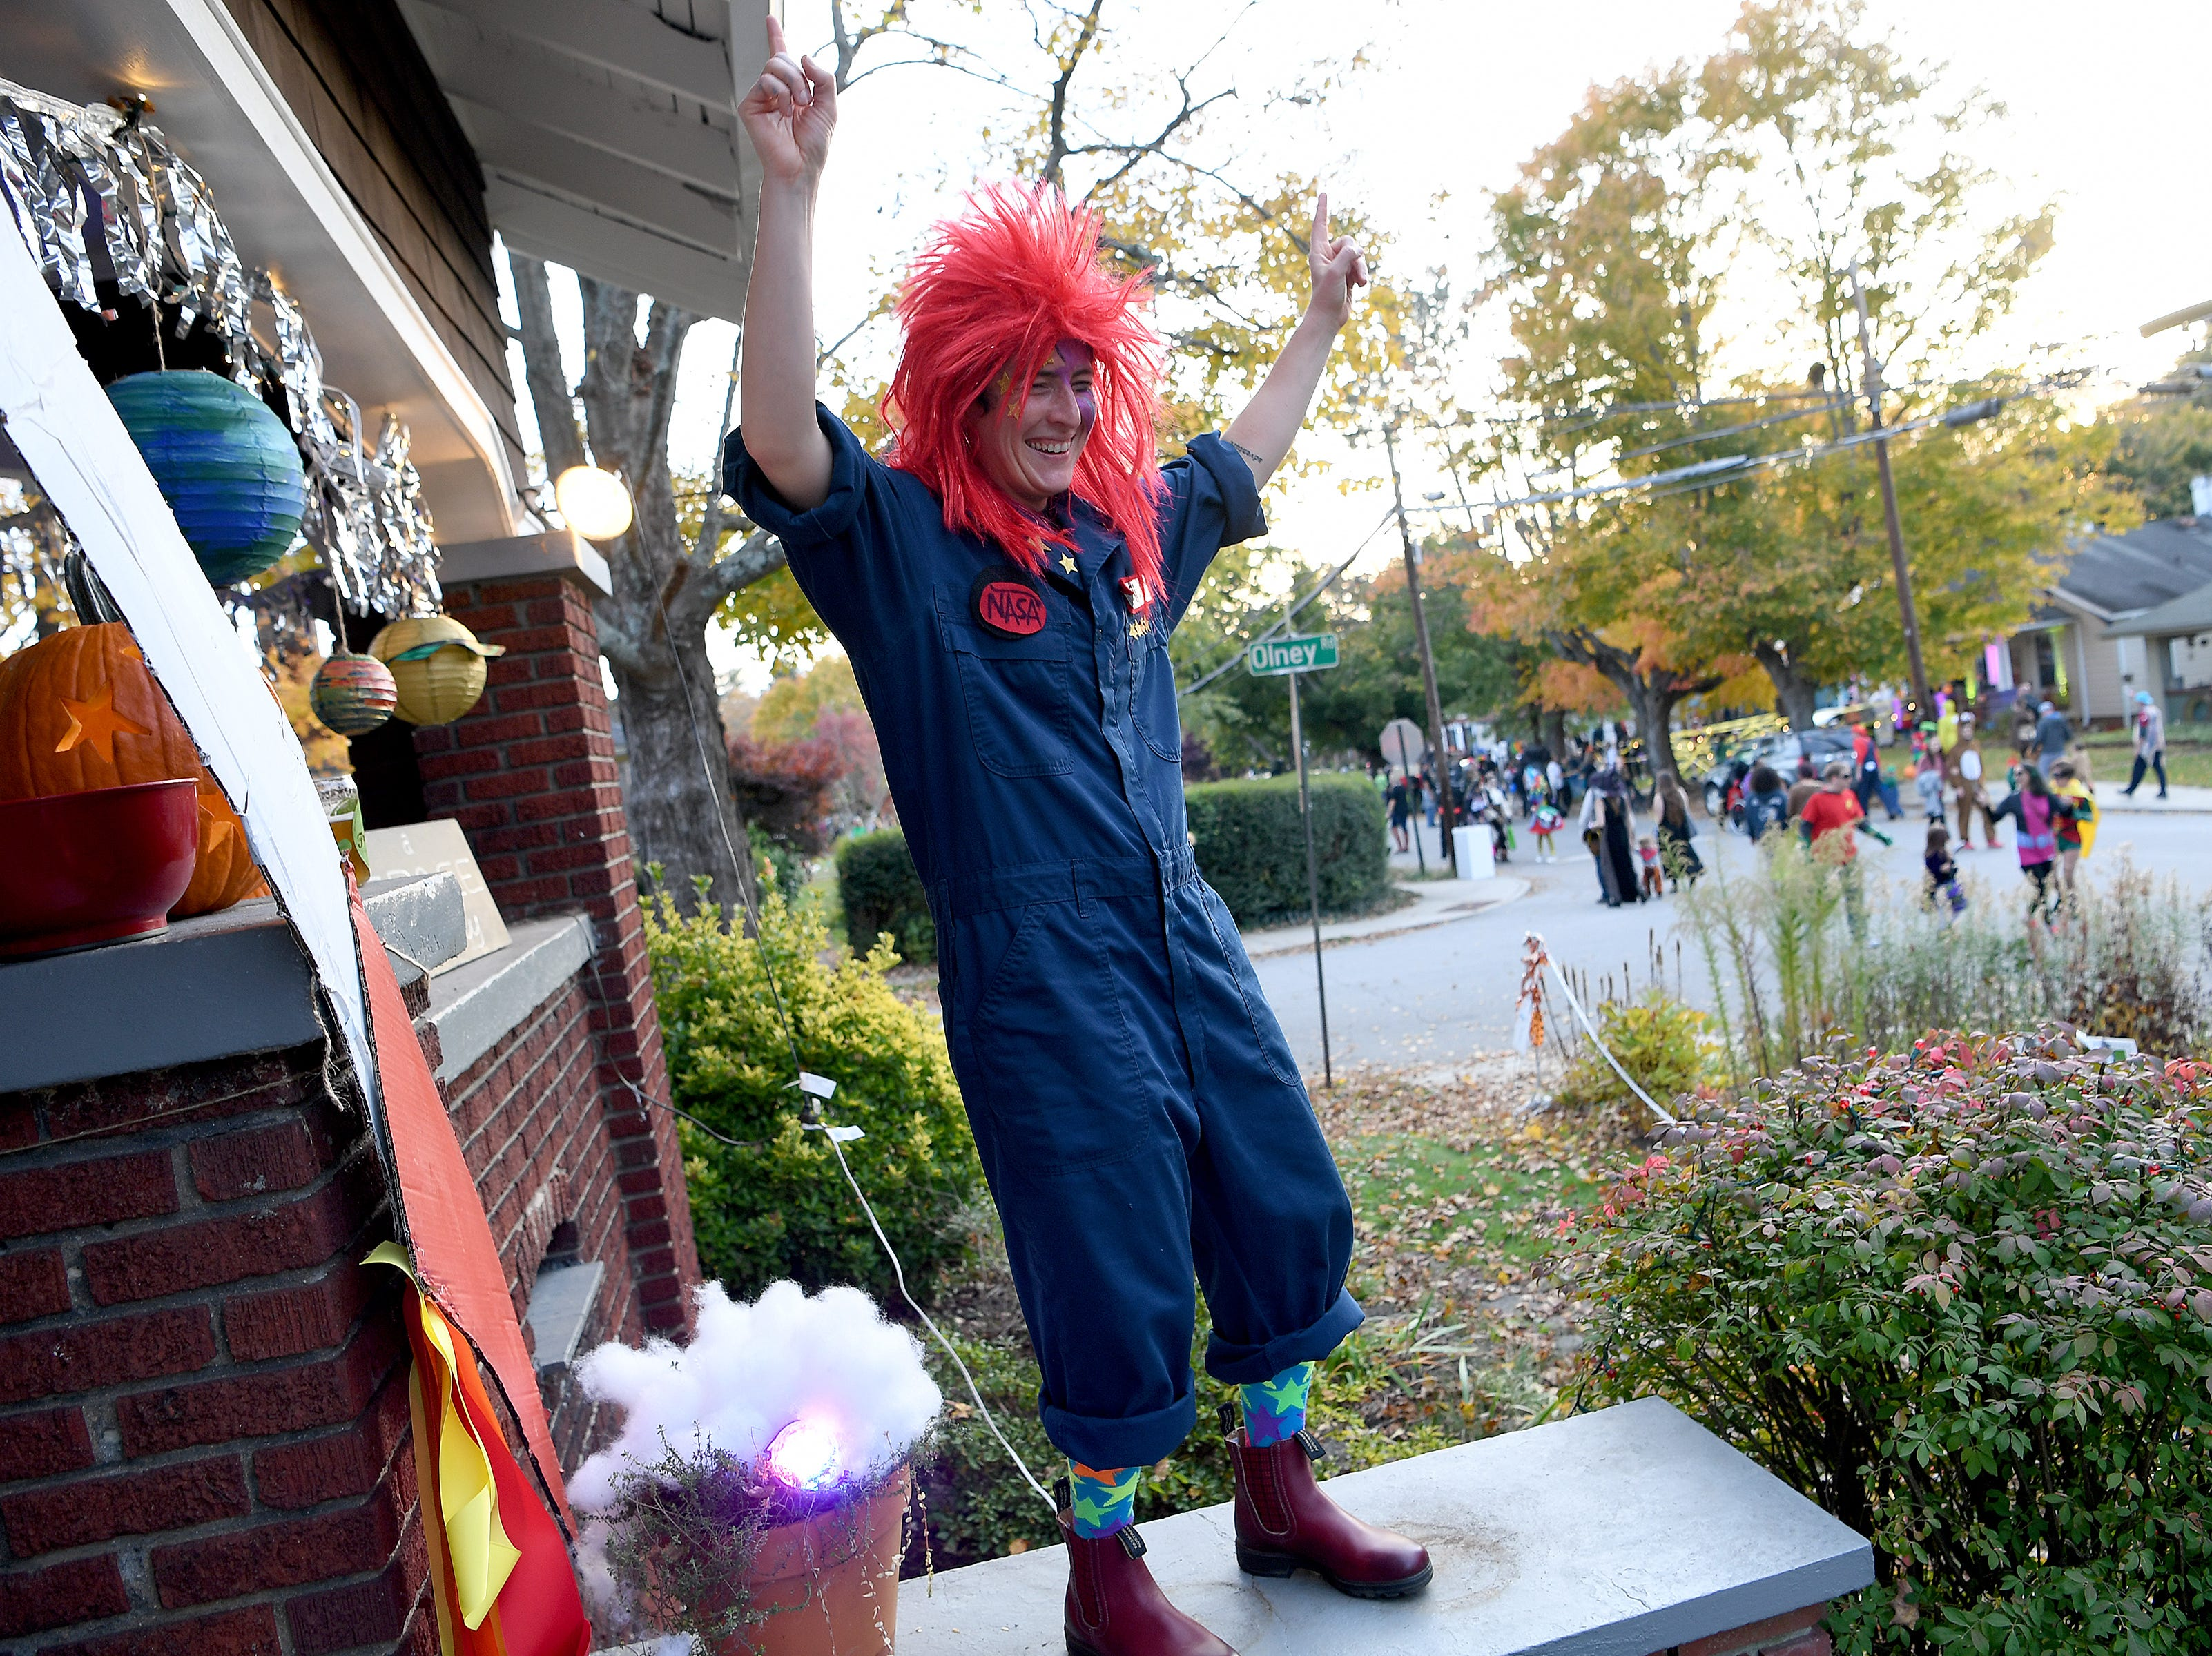 Fynn Crooks dances on the front porch of a spaceship as trick-or-treaters make their way up and down Vermont Avenue for the street's annual Halloween celebration on Oct. 31, 2018.